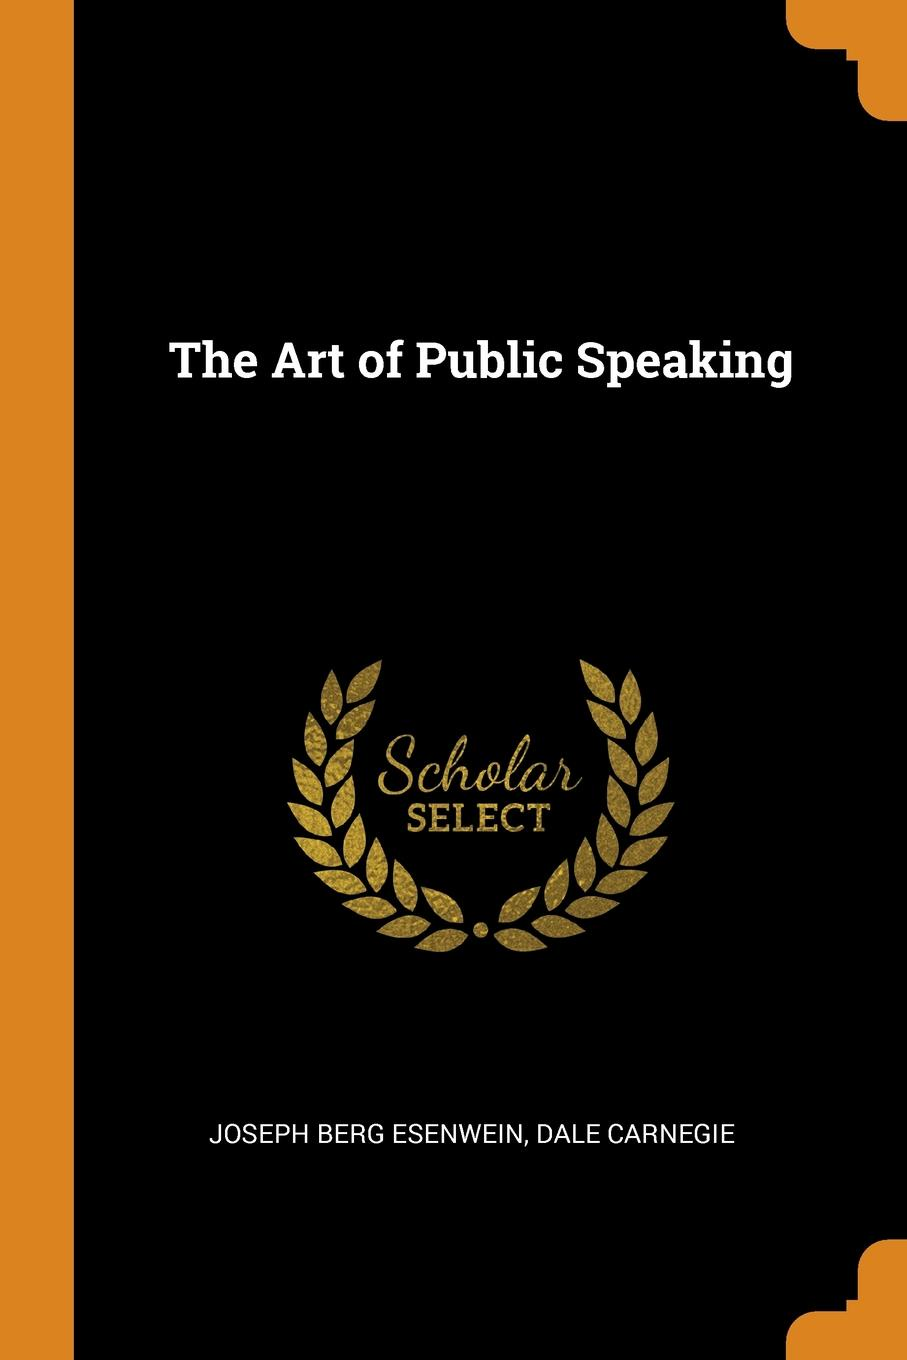 лучшая цена Joseph Berg Esenwein, Dale Carnegie The Art of Public Speaking